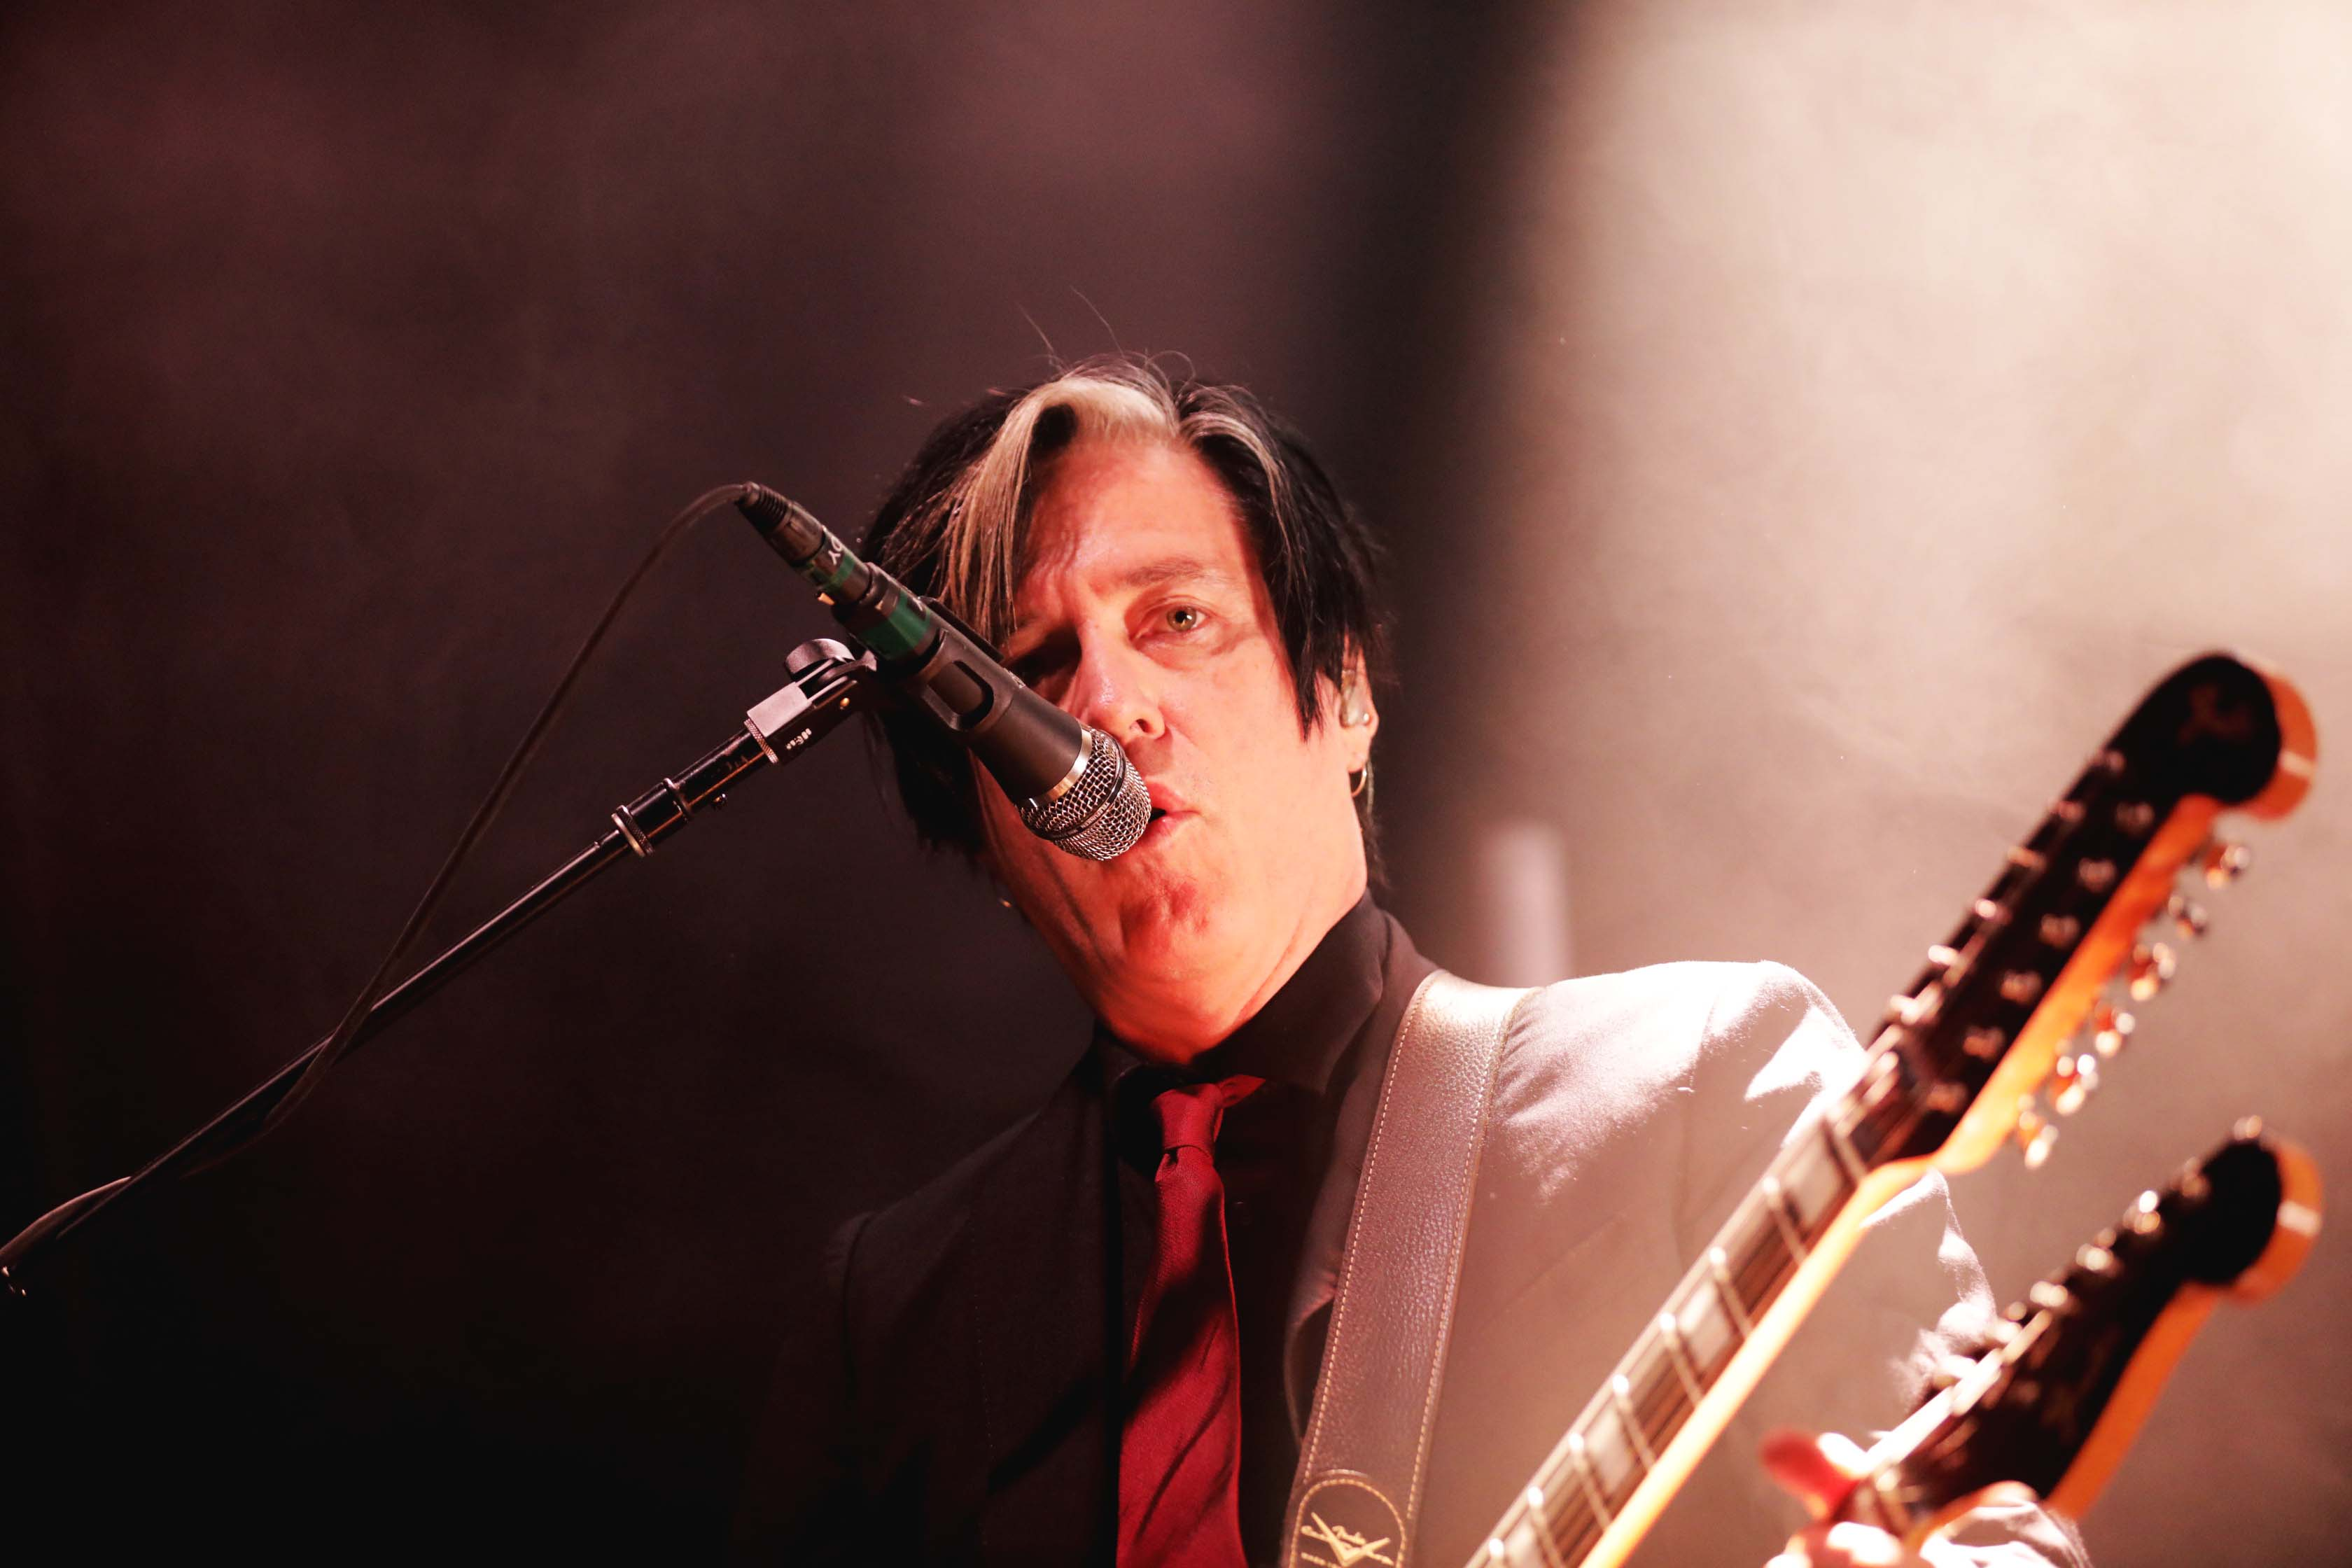 Guitarist Troy Van Leeuwen with a sweet double neck guitar. Photo: Lmsorenson.net